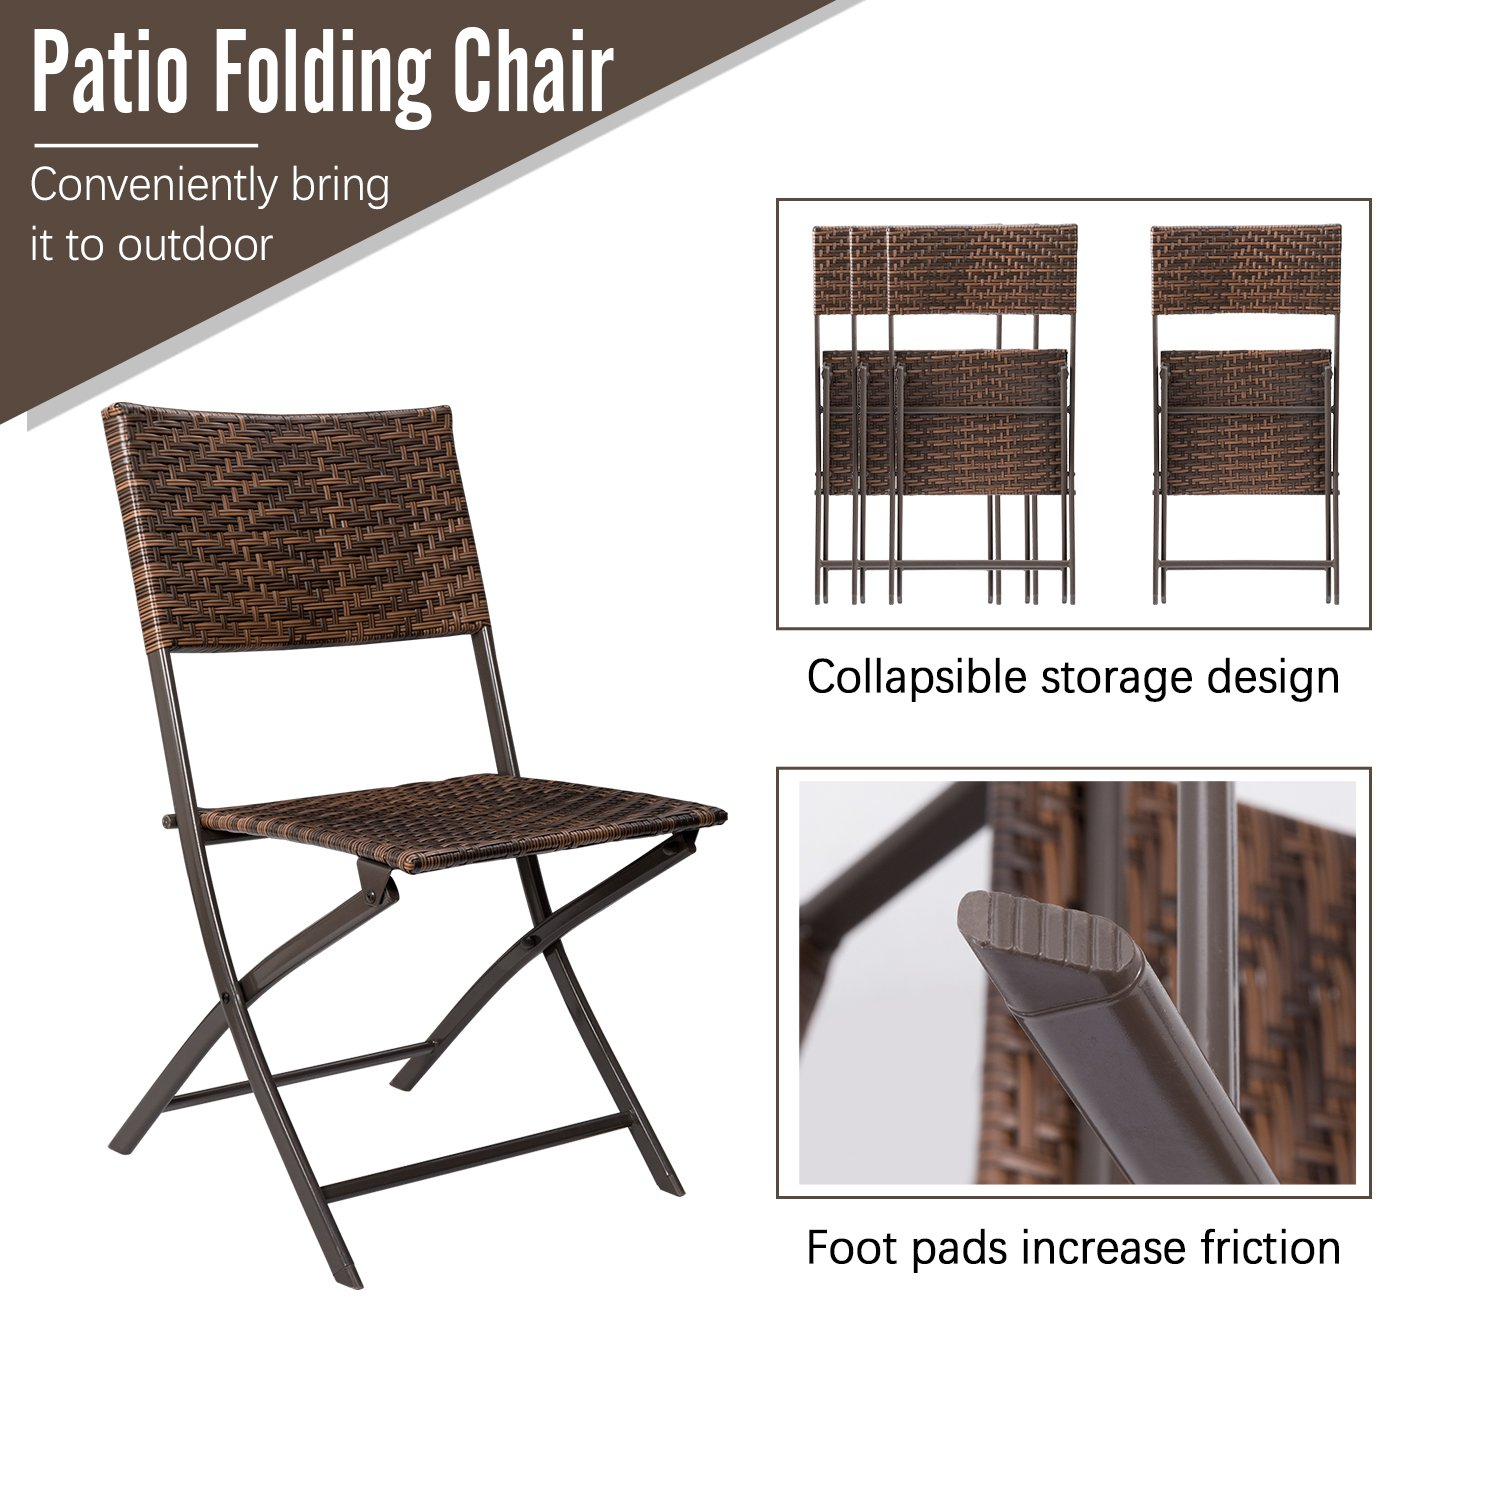 Devoko Rattan Patio Dining Chair 4 Pieces Space Saving Deck Camping Chairs Garden Pool Beach Lawn Using Outdoor Folding Chair (Brown) by Devoko (Image #4)